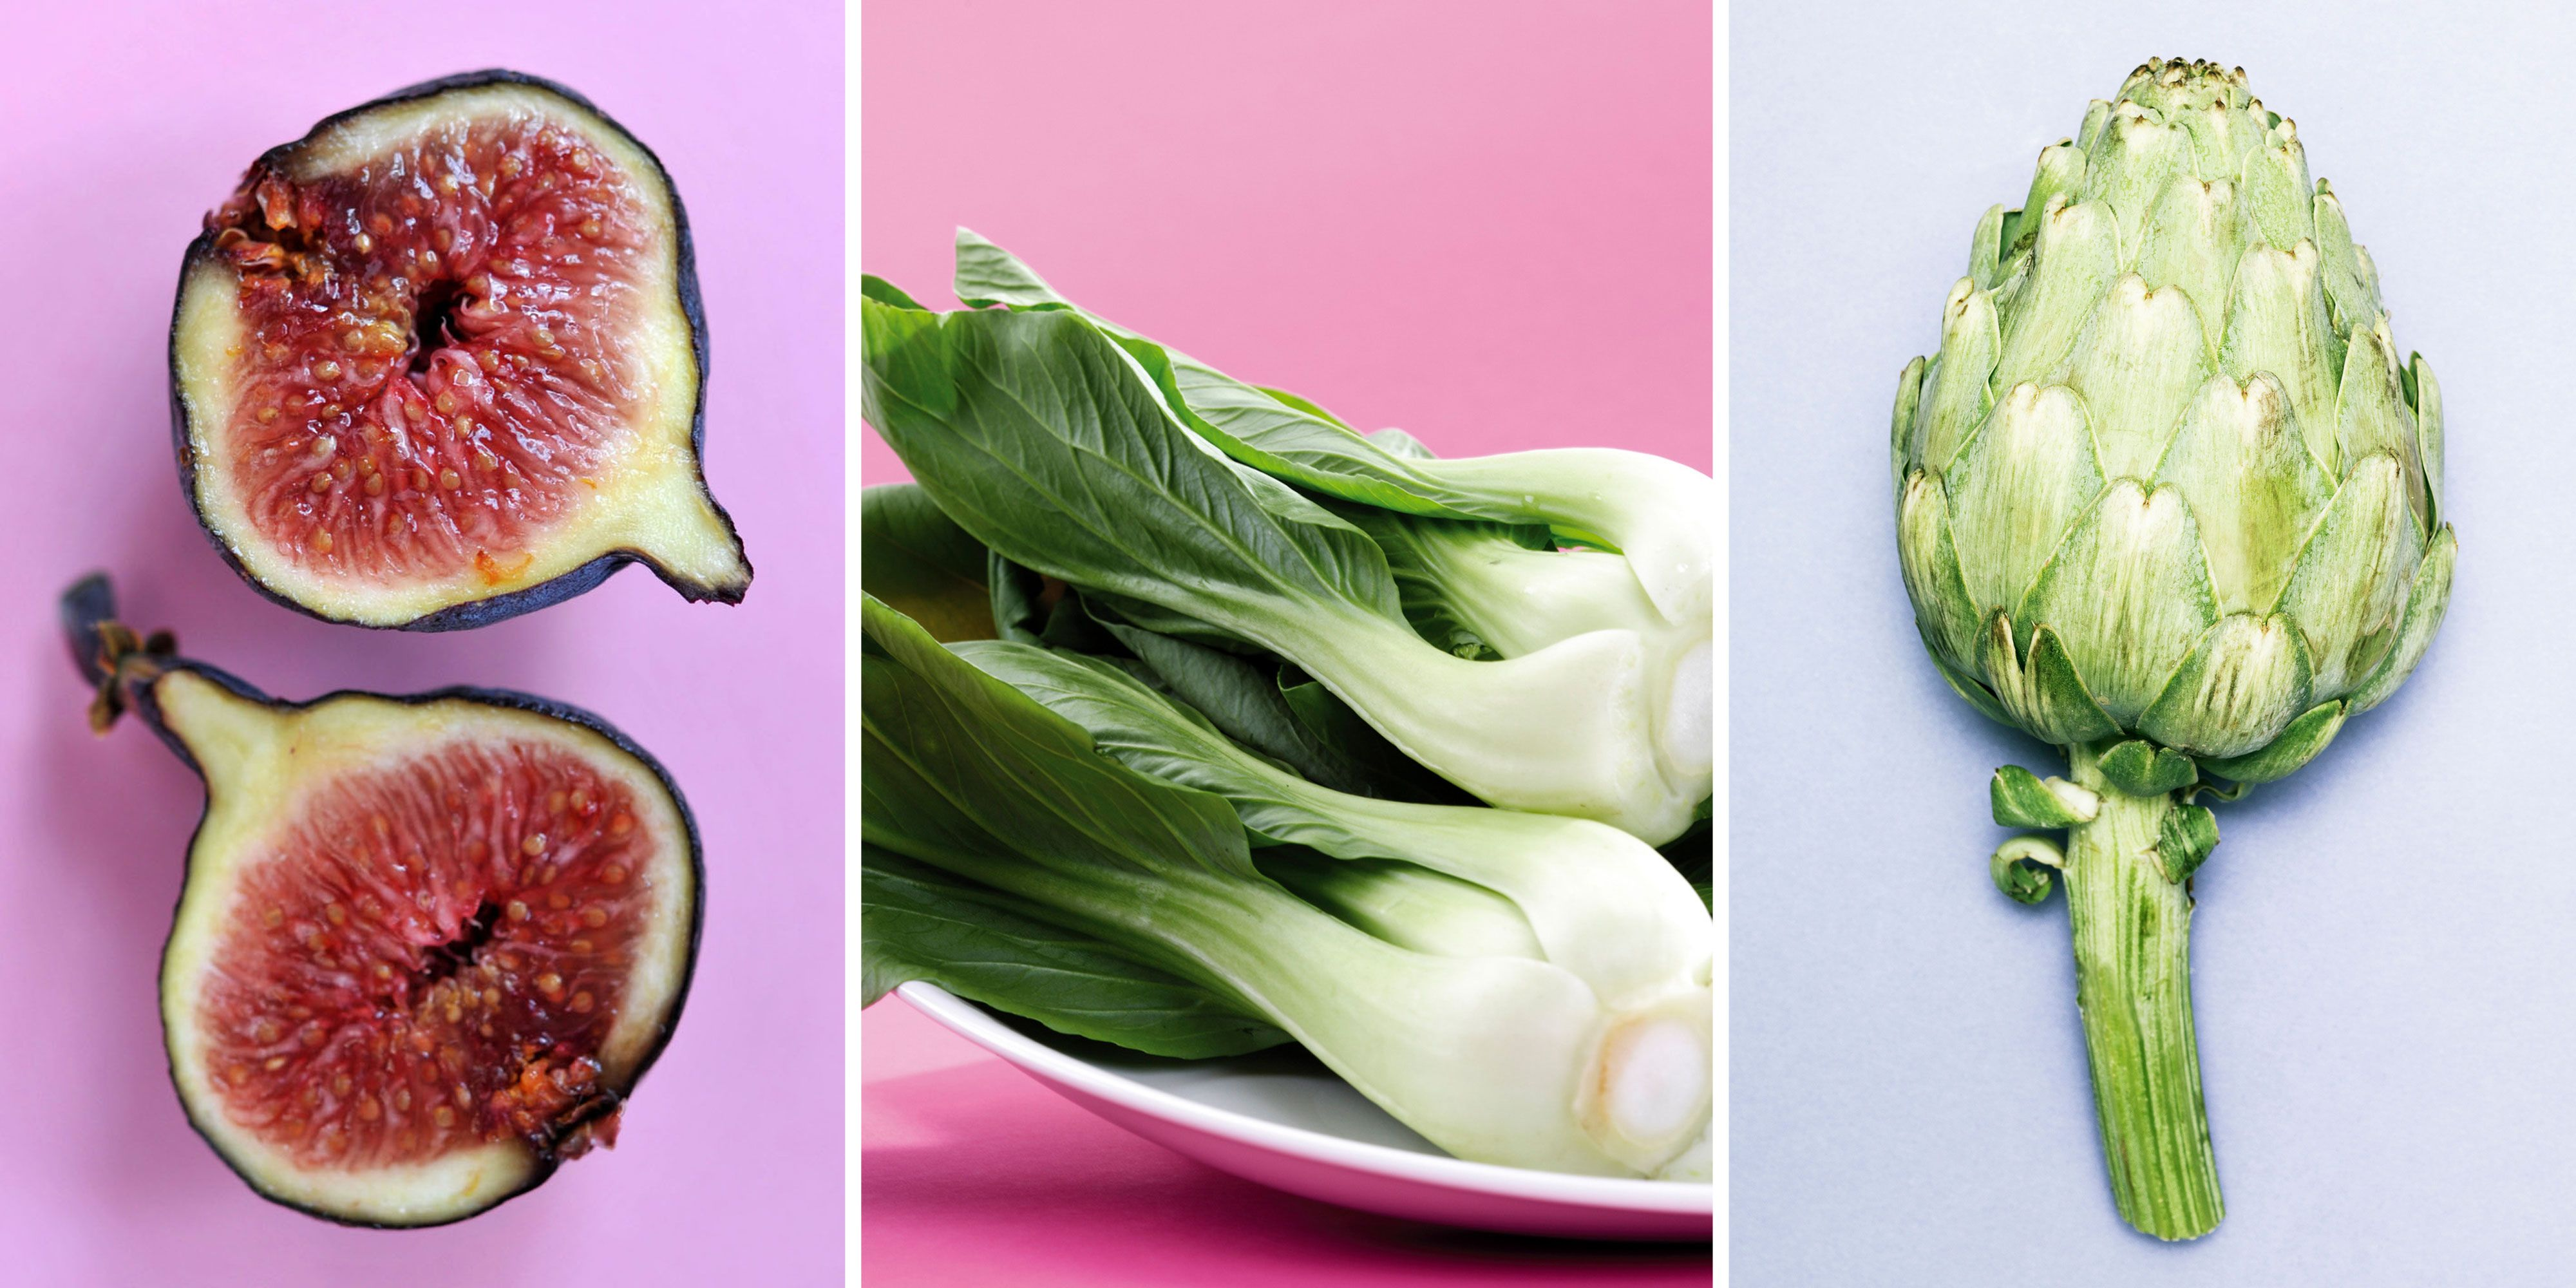 10 Calcium-Rich Foods That Will Give Your Health a Boost